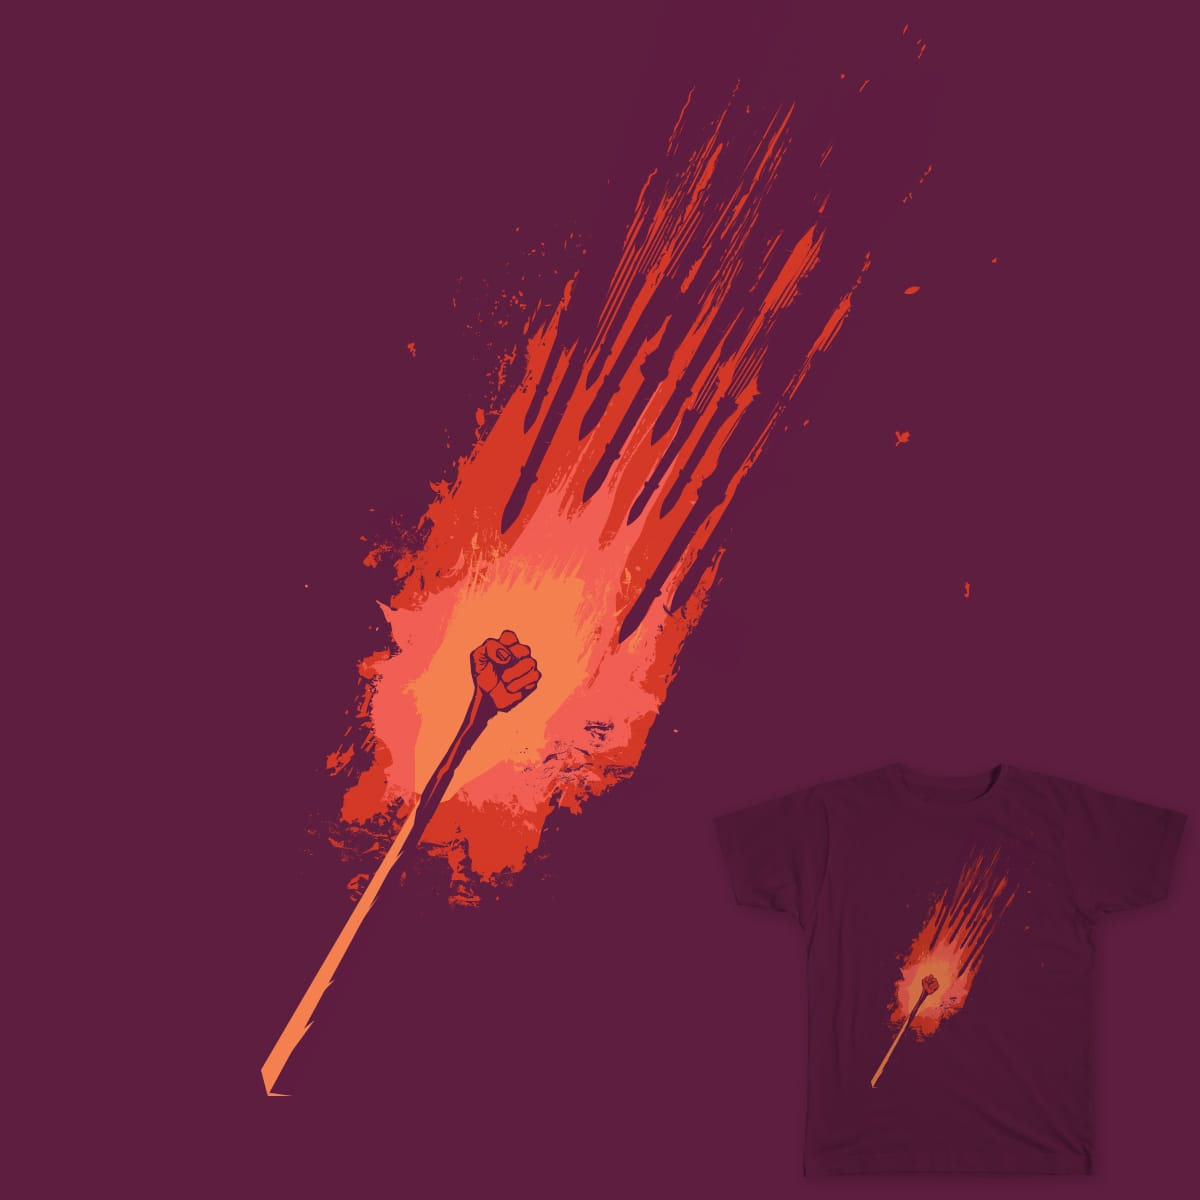 Spark by MothannaHussein on Threadless